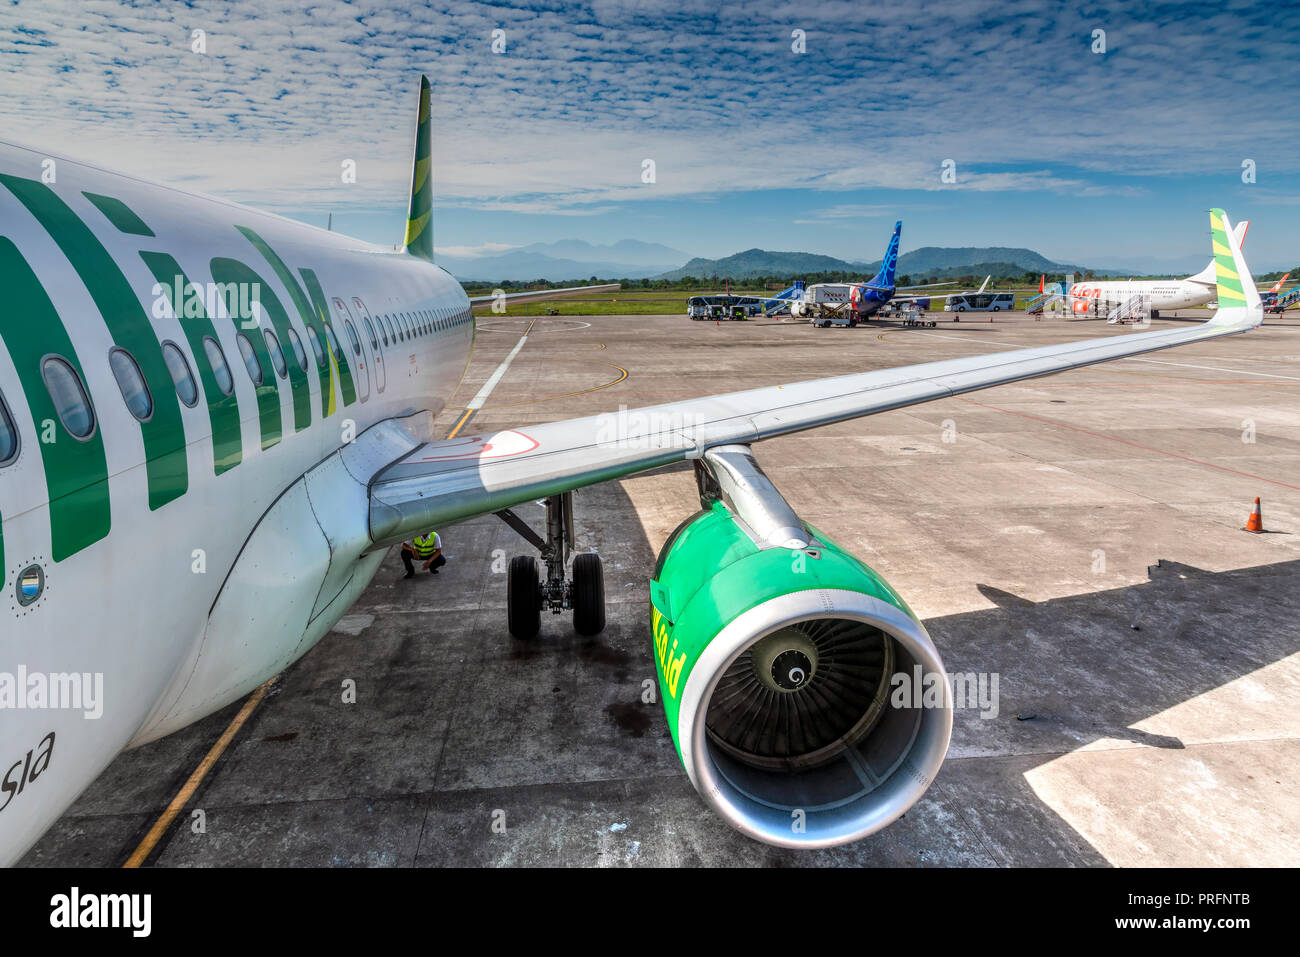 Citilink Airbus A320, Makassar airport, Sulawesi, Indonesia - Stock Image